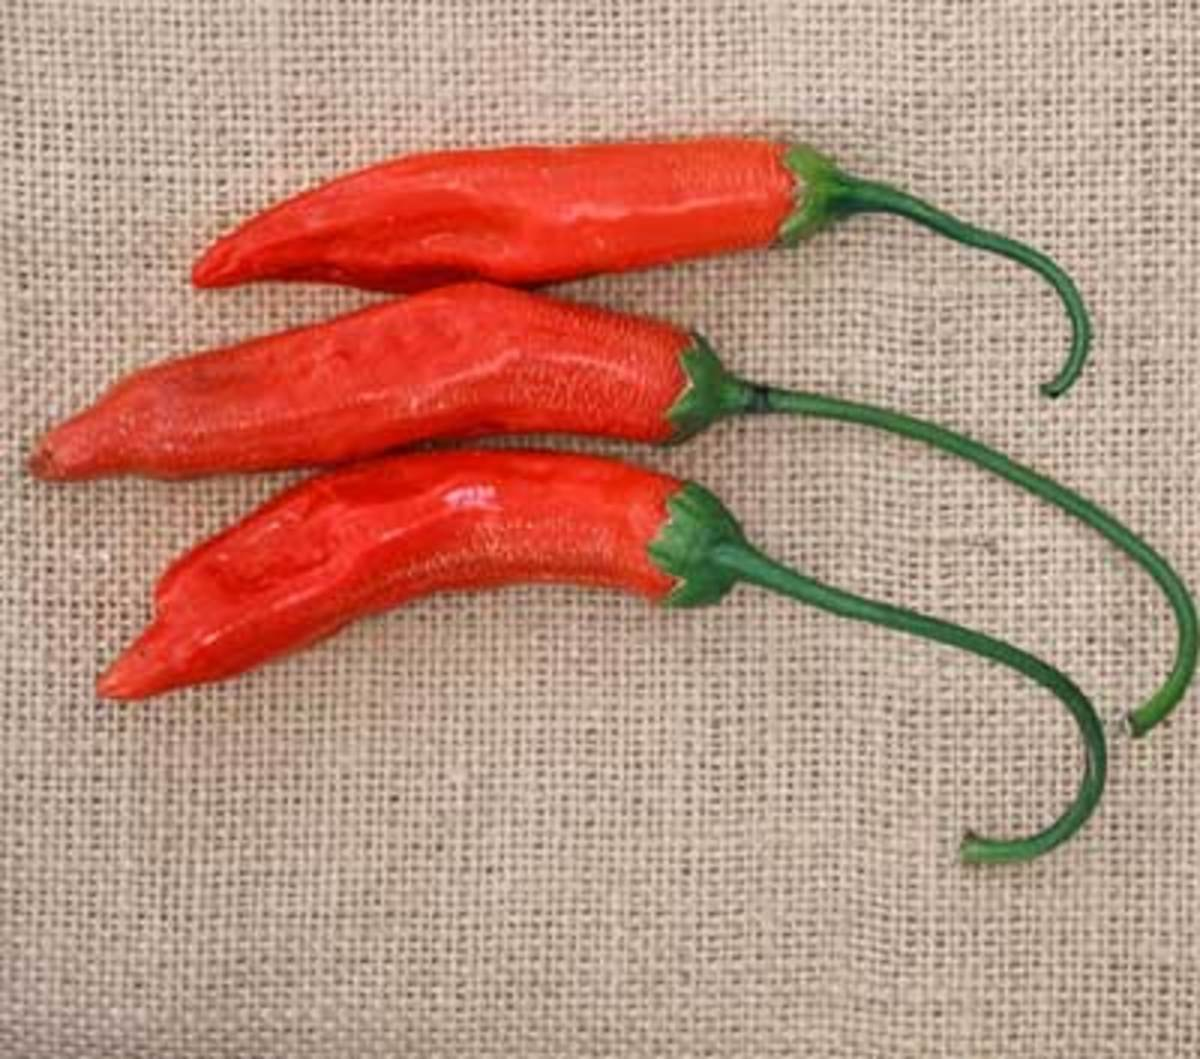 Aji Red - very hot 3 to 5-inch orange-red peppers that are generally dried into powder for use in sauces and stews. A Capsicum baccatum type with 30,000 to 50,000 Scoville units